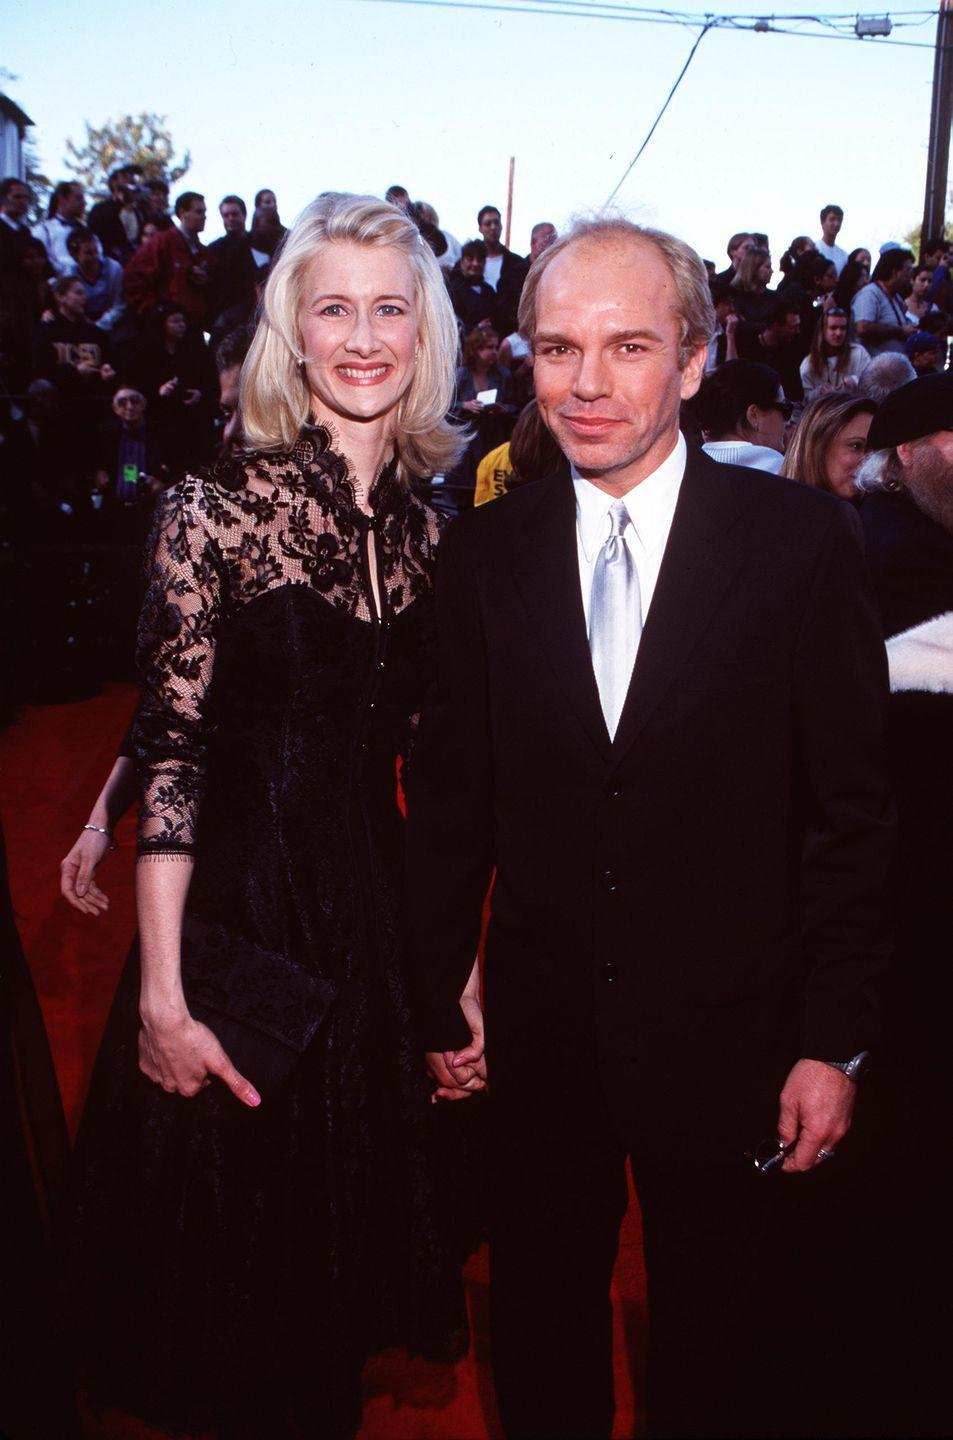 """<p>Thorton popped the question in 1998 but they split a year later when the actor allegedly left Dern to marry Angelina Jolie. """"I left our home to work on a movie, and while I was away, my boyfriend got married, and I've never heard from him again,"""" Dern <a href=""""http://www.nydailynews.com/entertainment/back-women-billy-bob-thornton-article-1.2753752"""" rel=""""nofollow noopener"""" target=""""_blank"""" data-ylk=""""slk:told Talk Magazine"""" class=""""link rapid-noclick-resp"""">told <em>Talk Magazine</em></a>. </p>"""